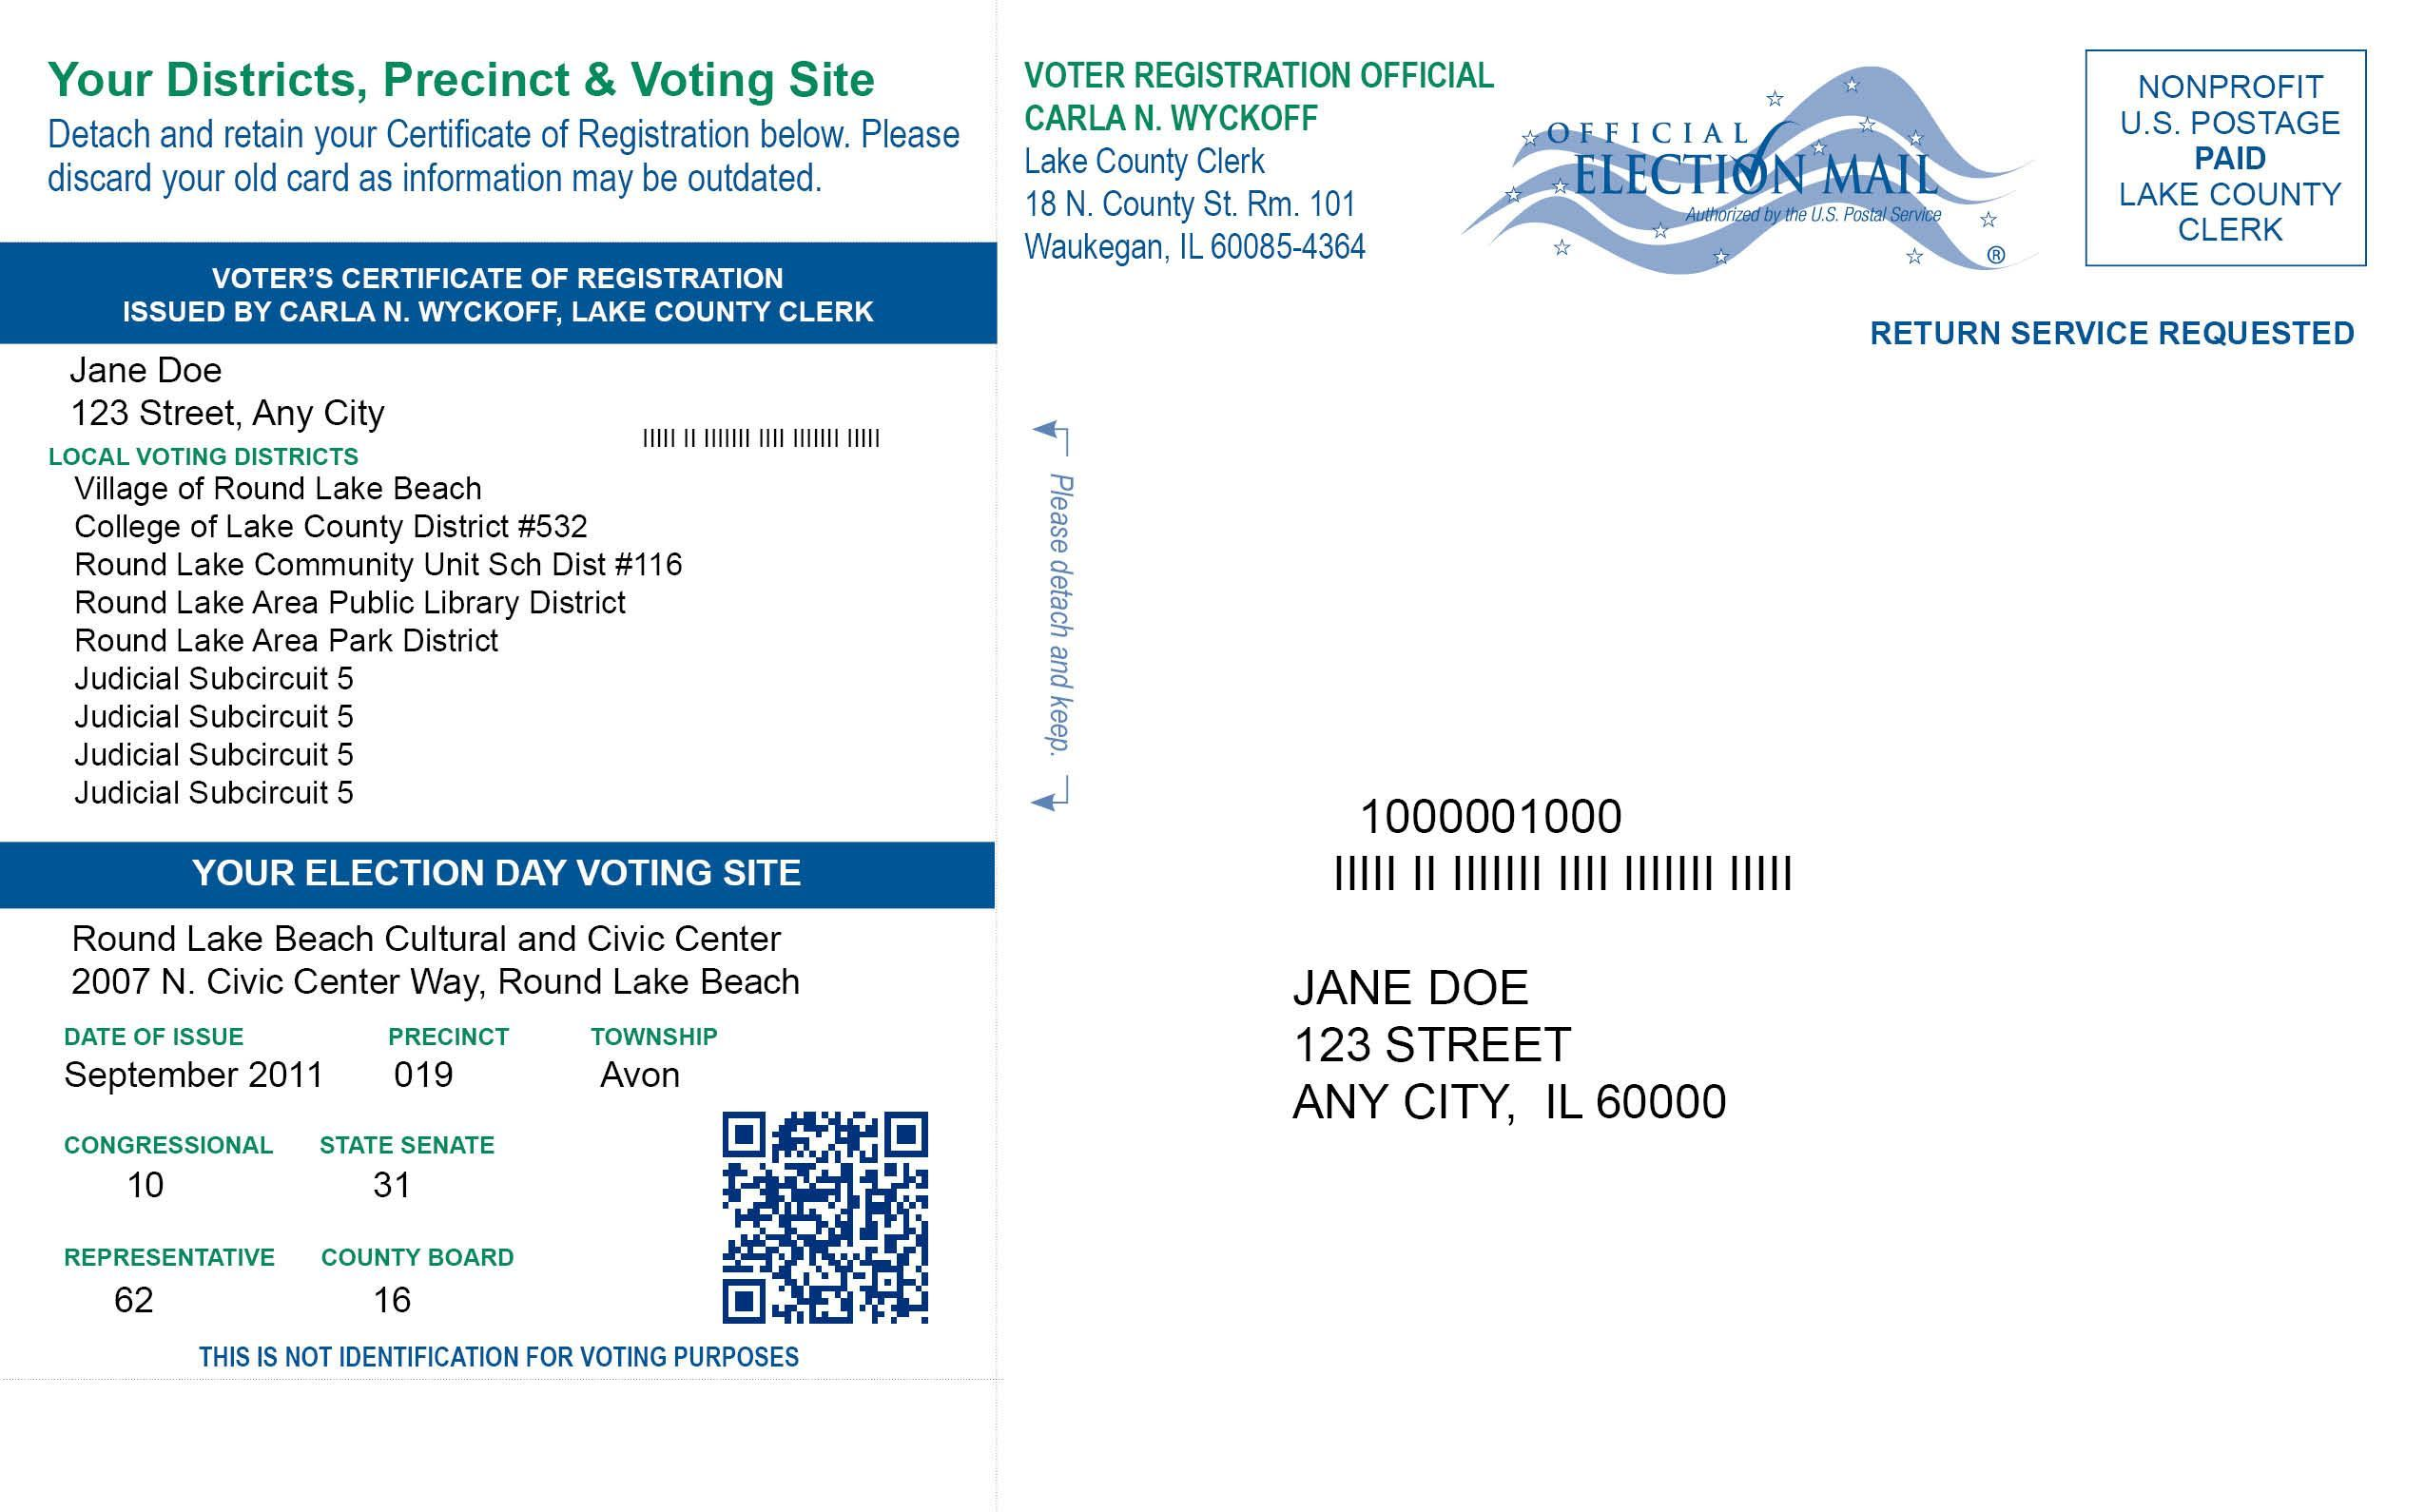 sample voter registration card1